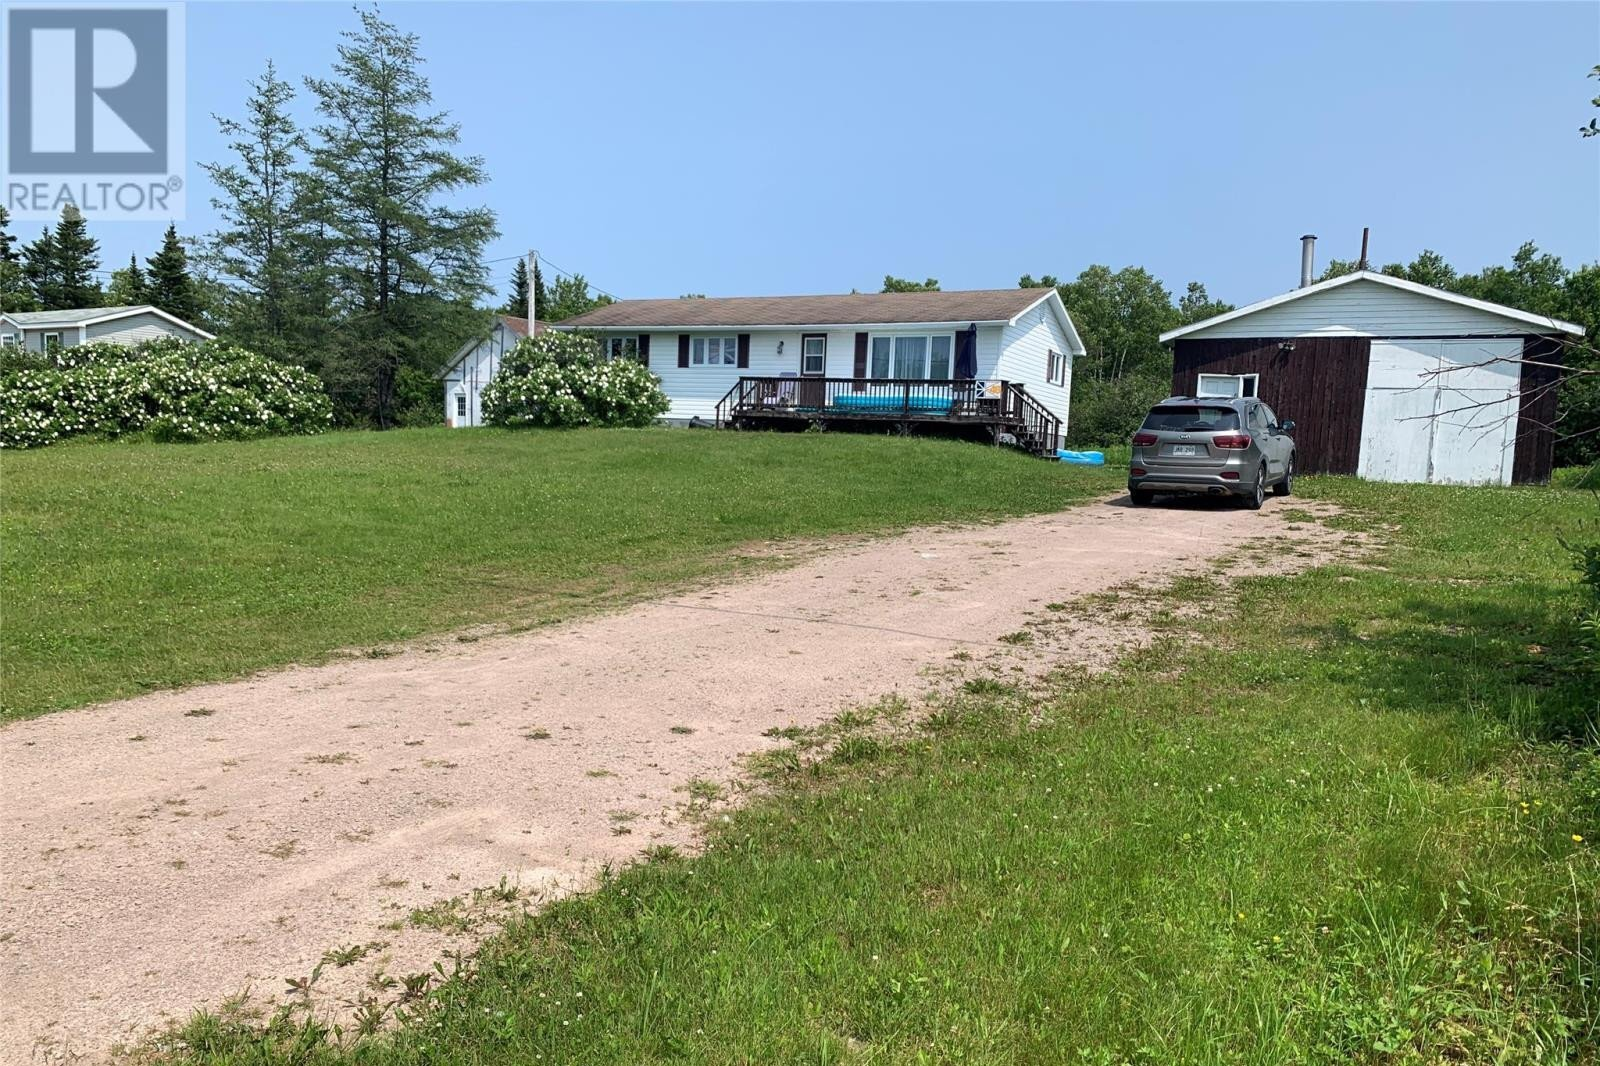 House for sale at 48 Cold Brook Rd Stephenville Newfoundland - MLS: 1213592